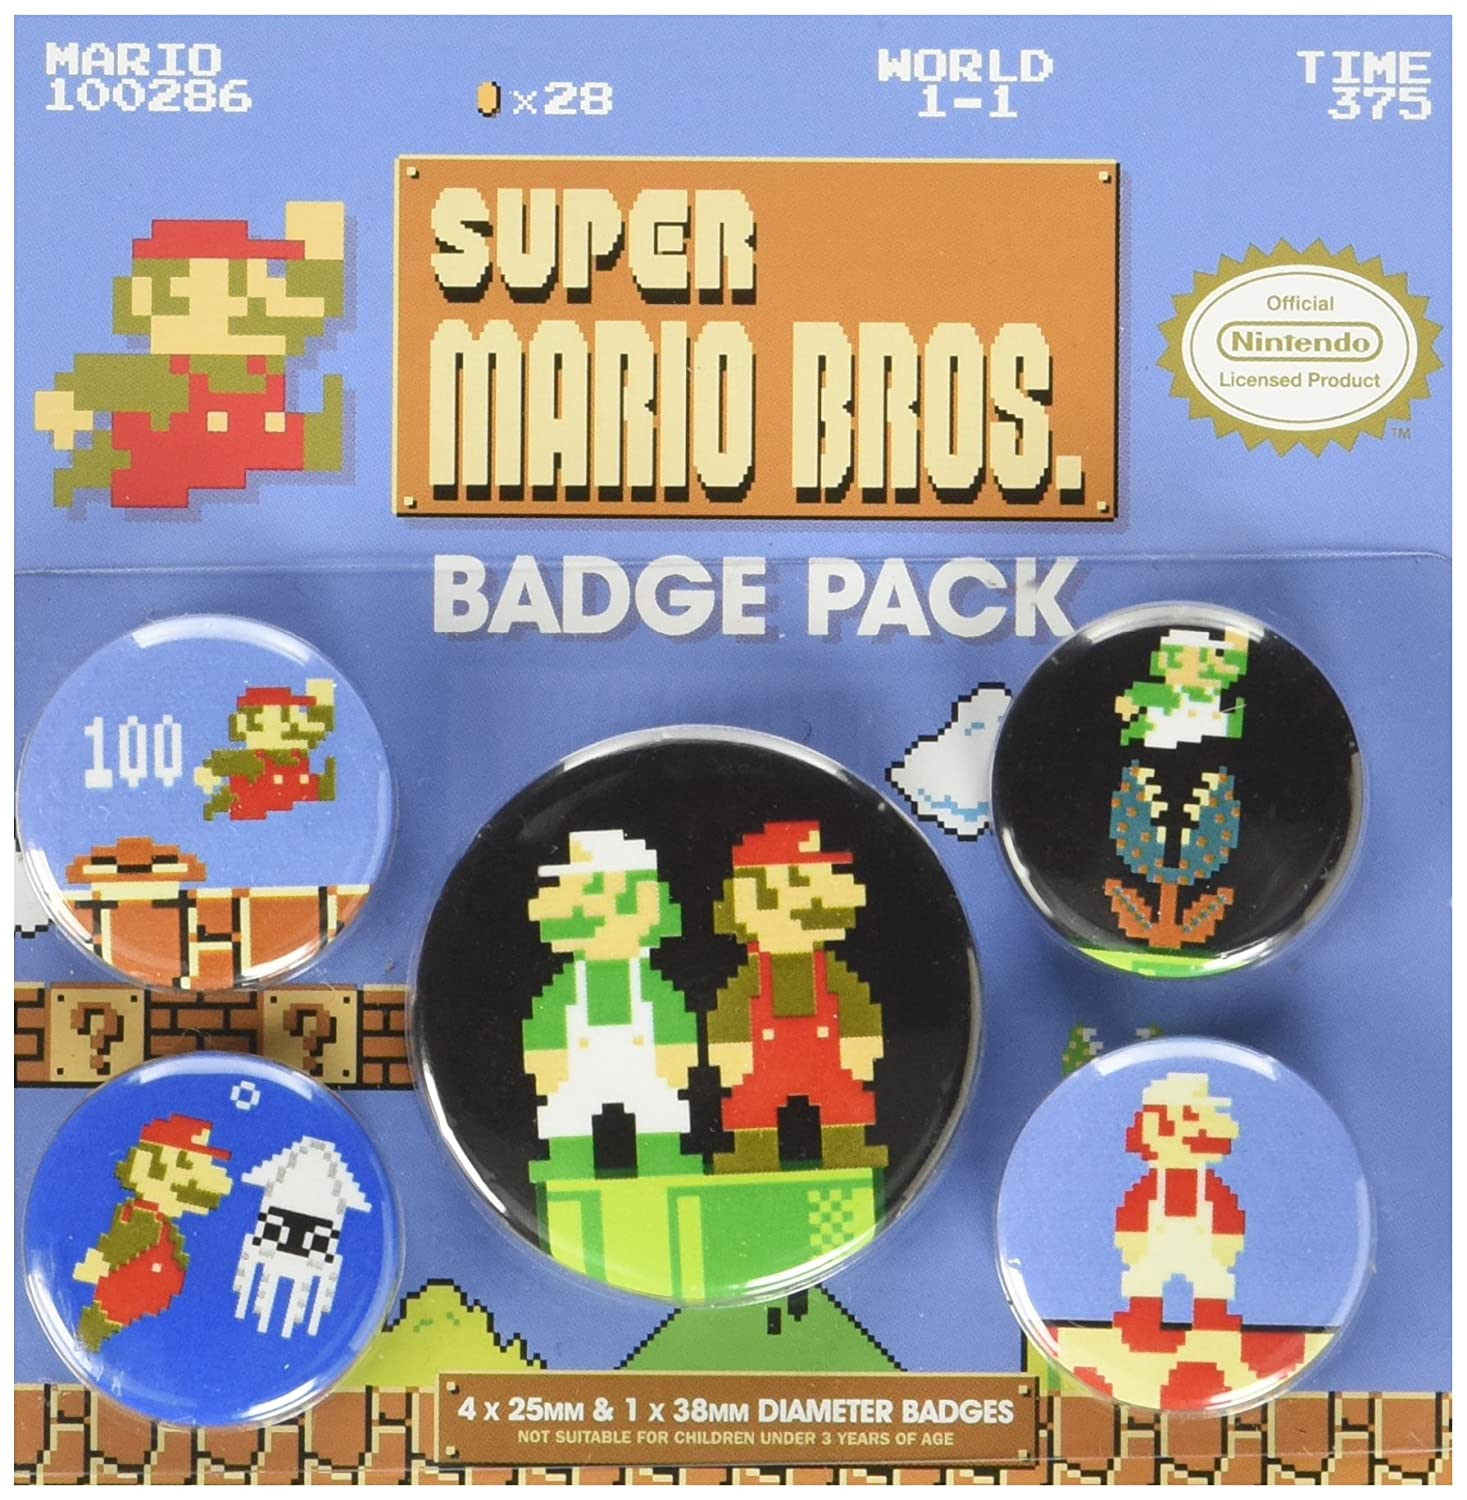 Super Mario Bros. Spilla Pin Badges 5 Pack Pyramid International No Name BP80442